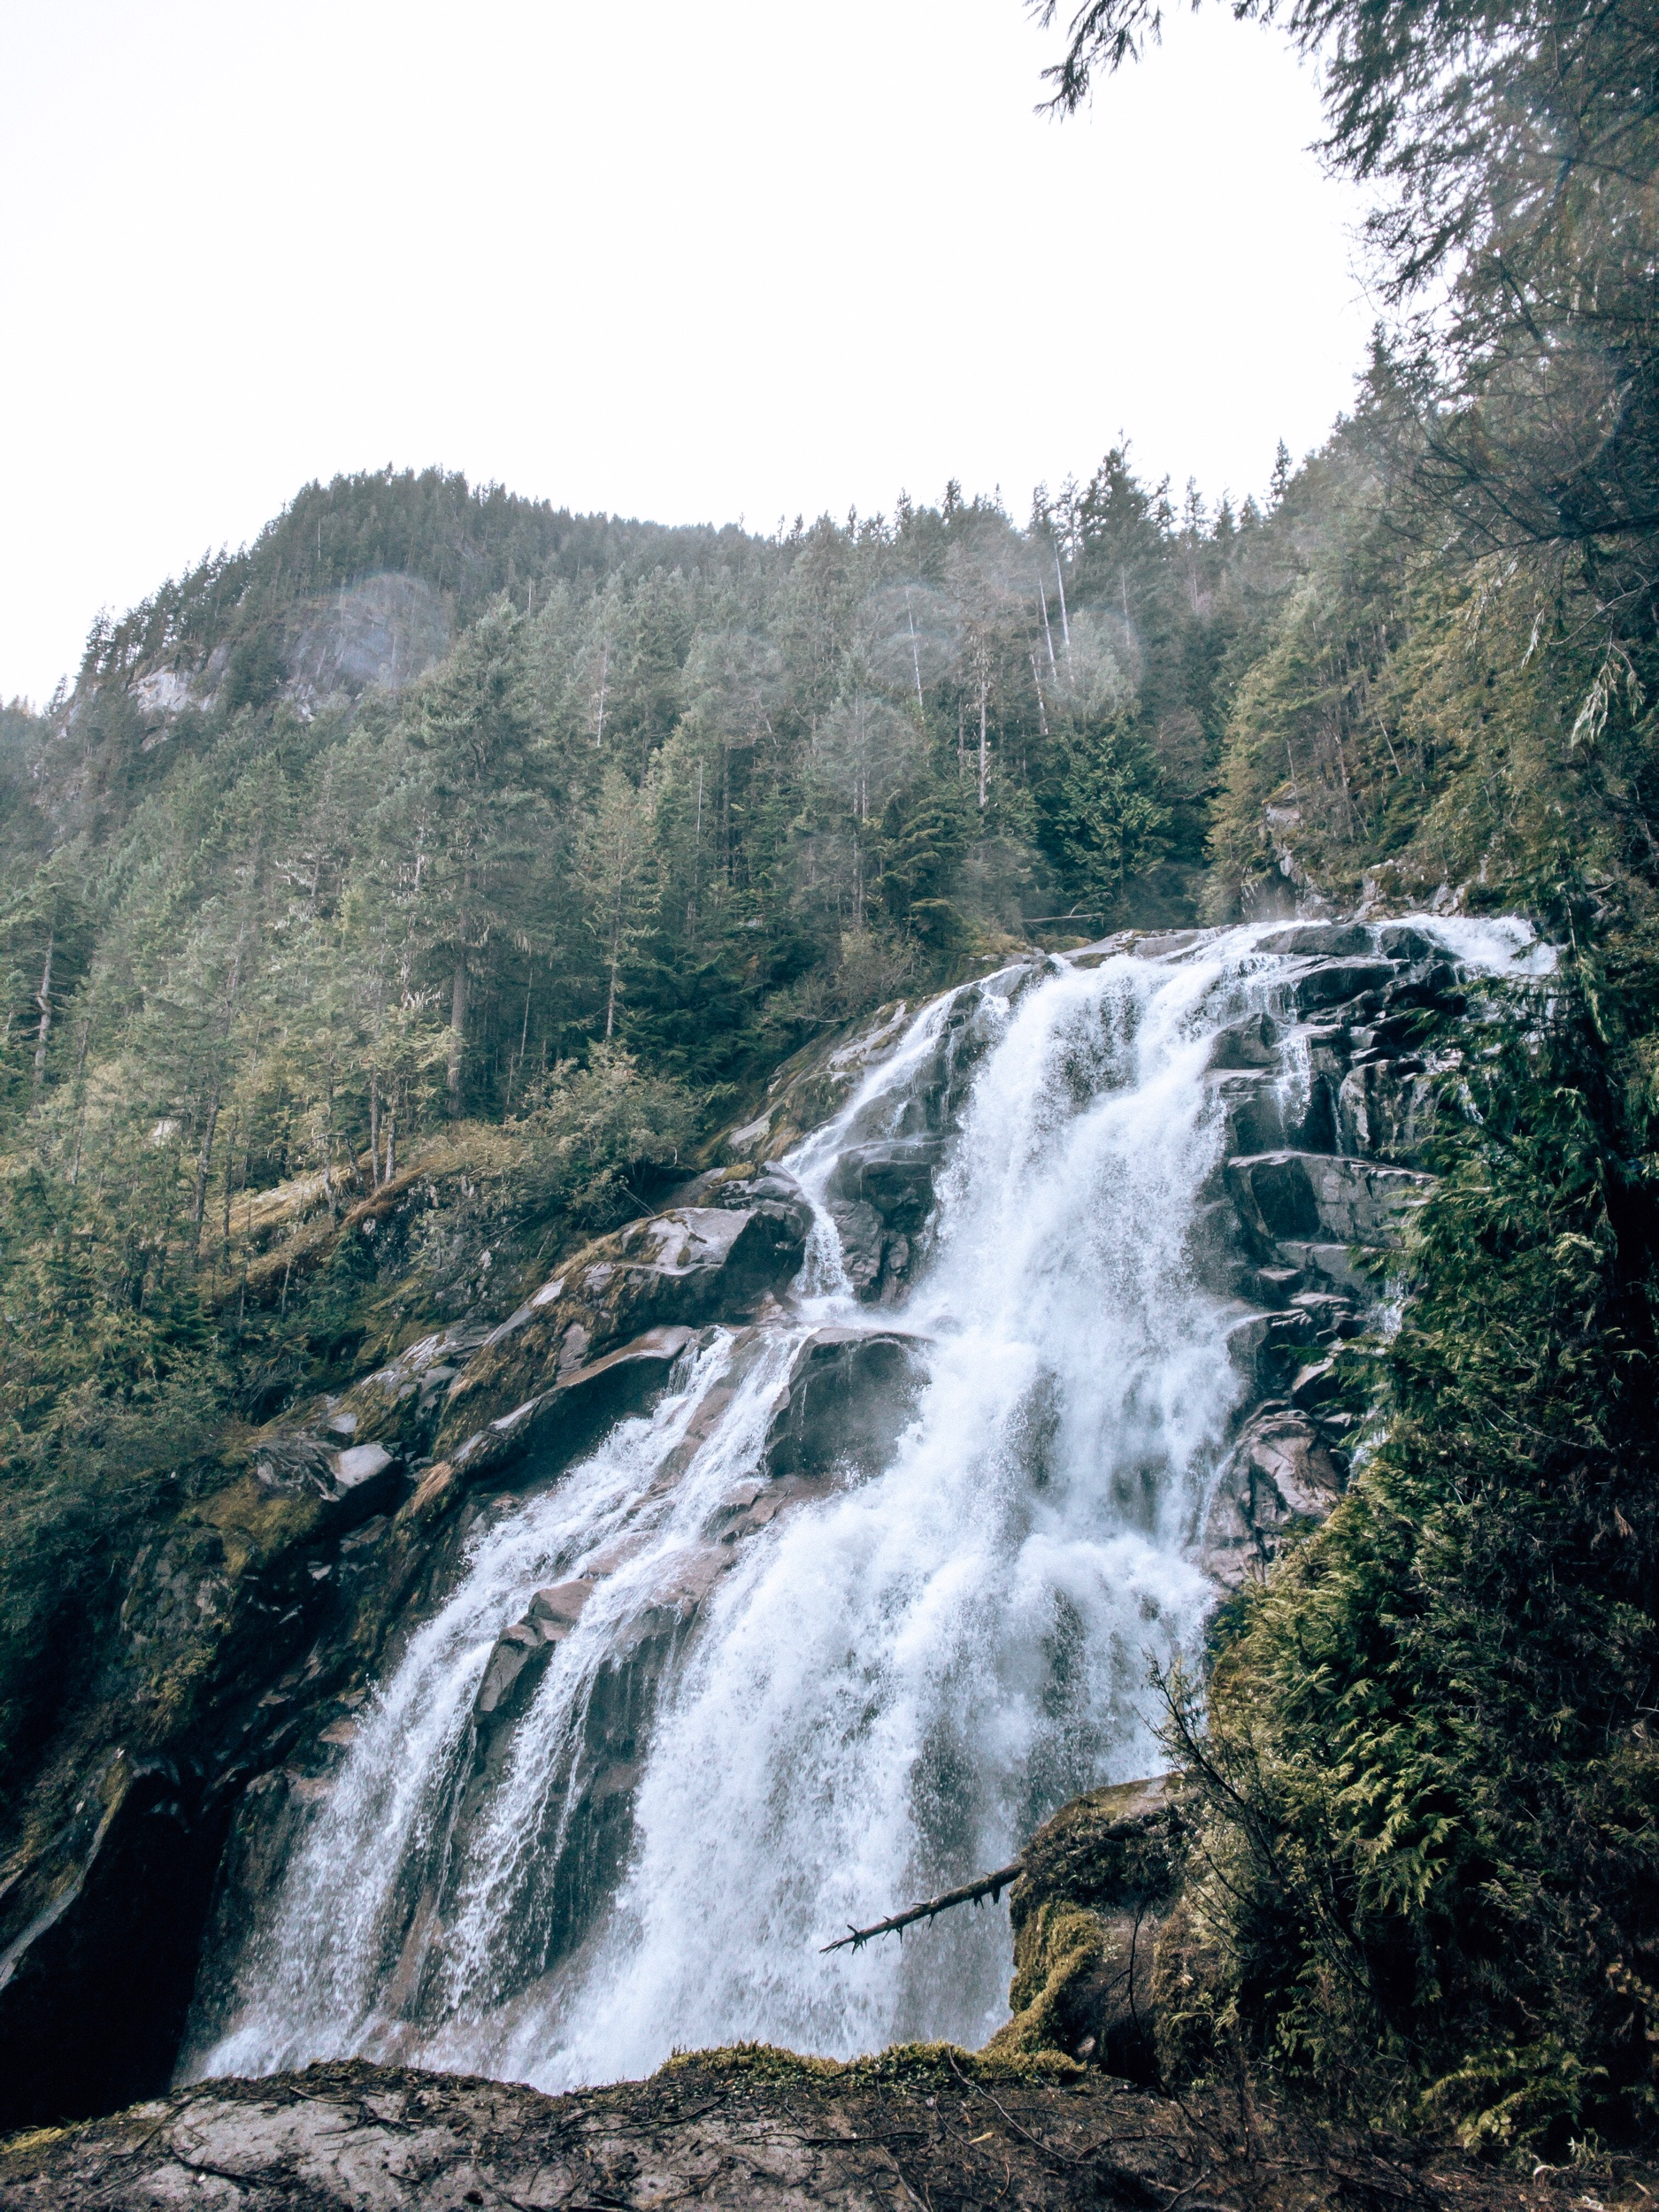 Waterfall hike in Squamish BC Canada